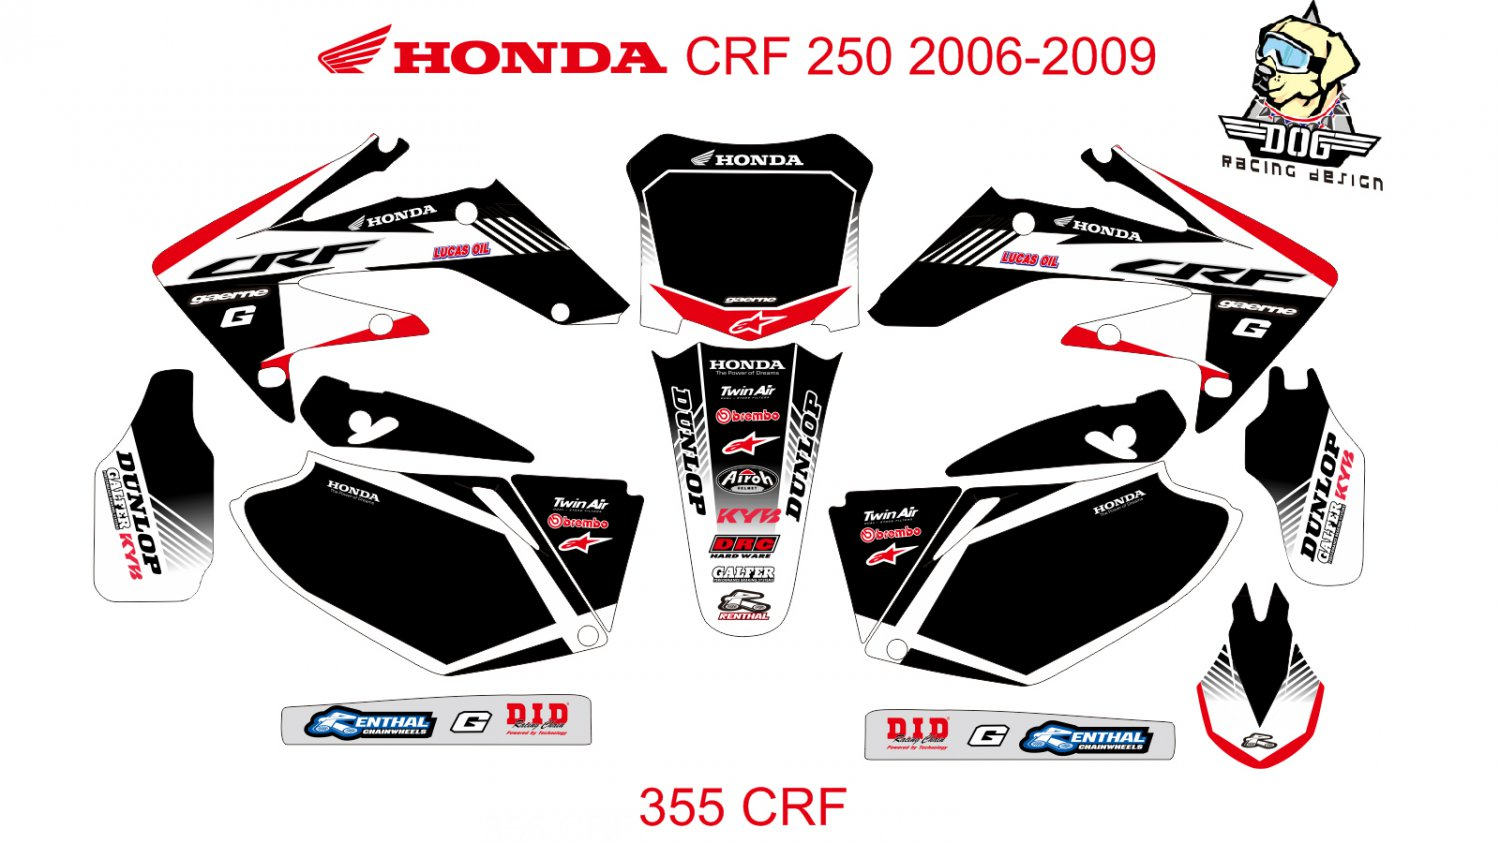 HONDA CRF 250 2006-2009 GRAPHIC DECAL KIT CODE.355